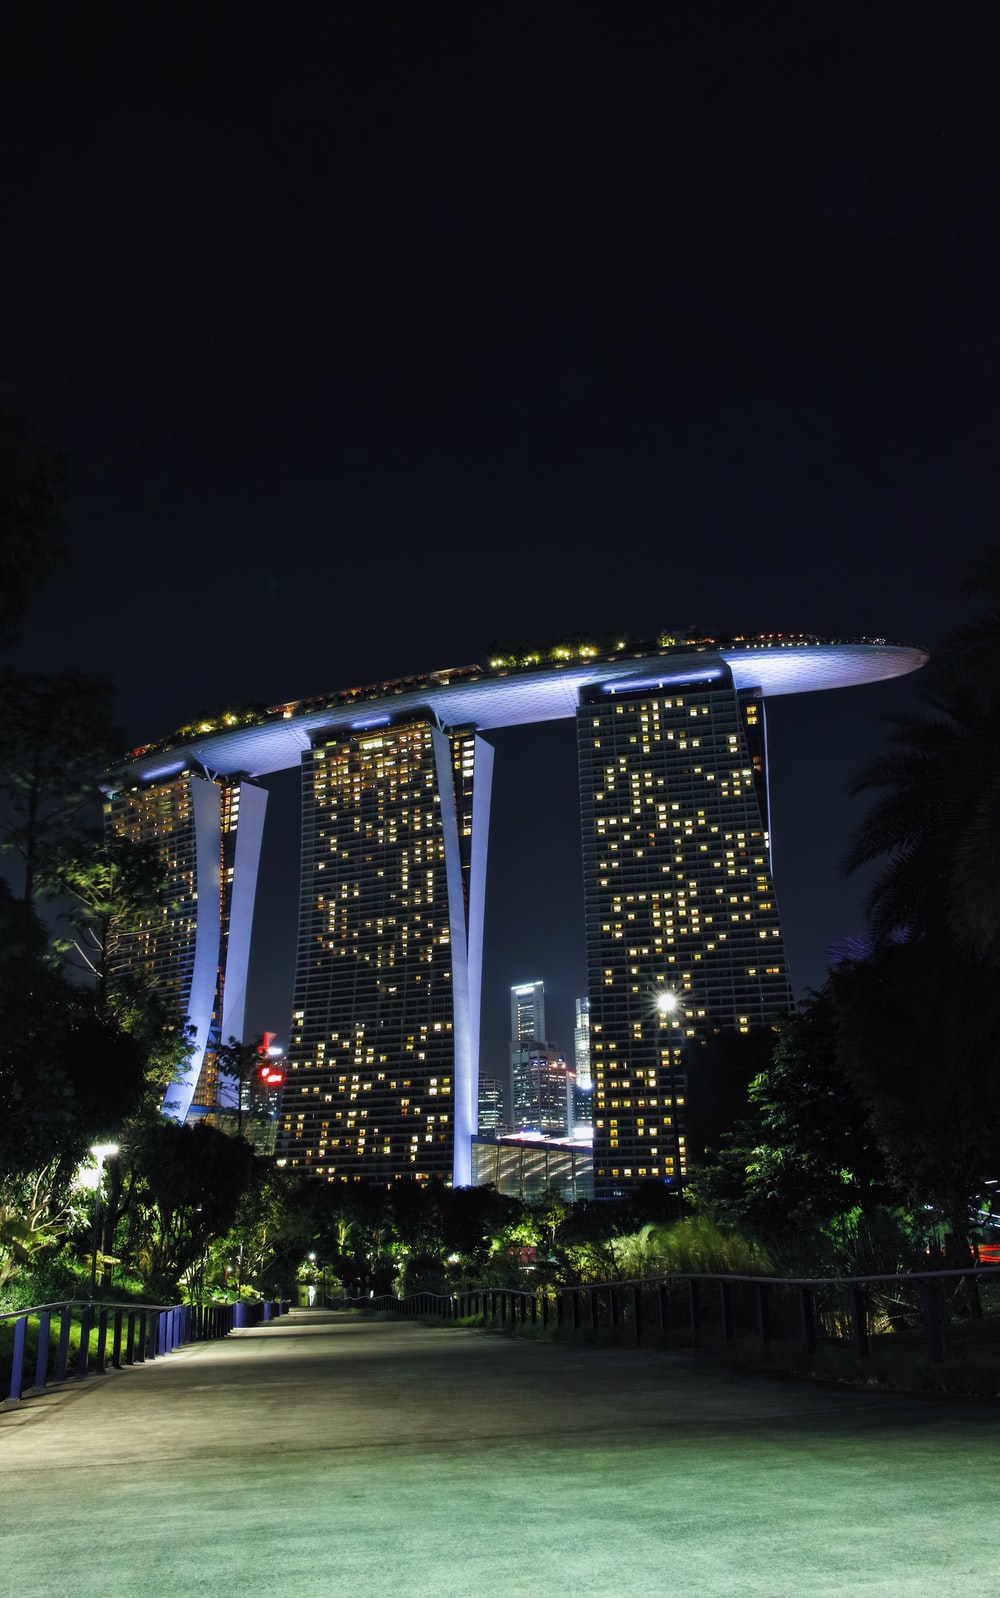 Singapore building under clear sky at daytime